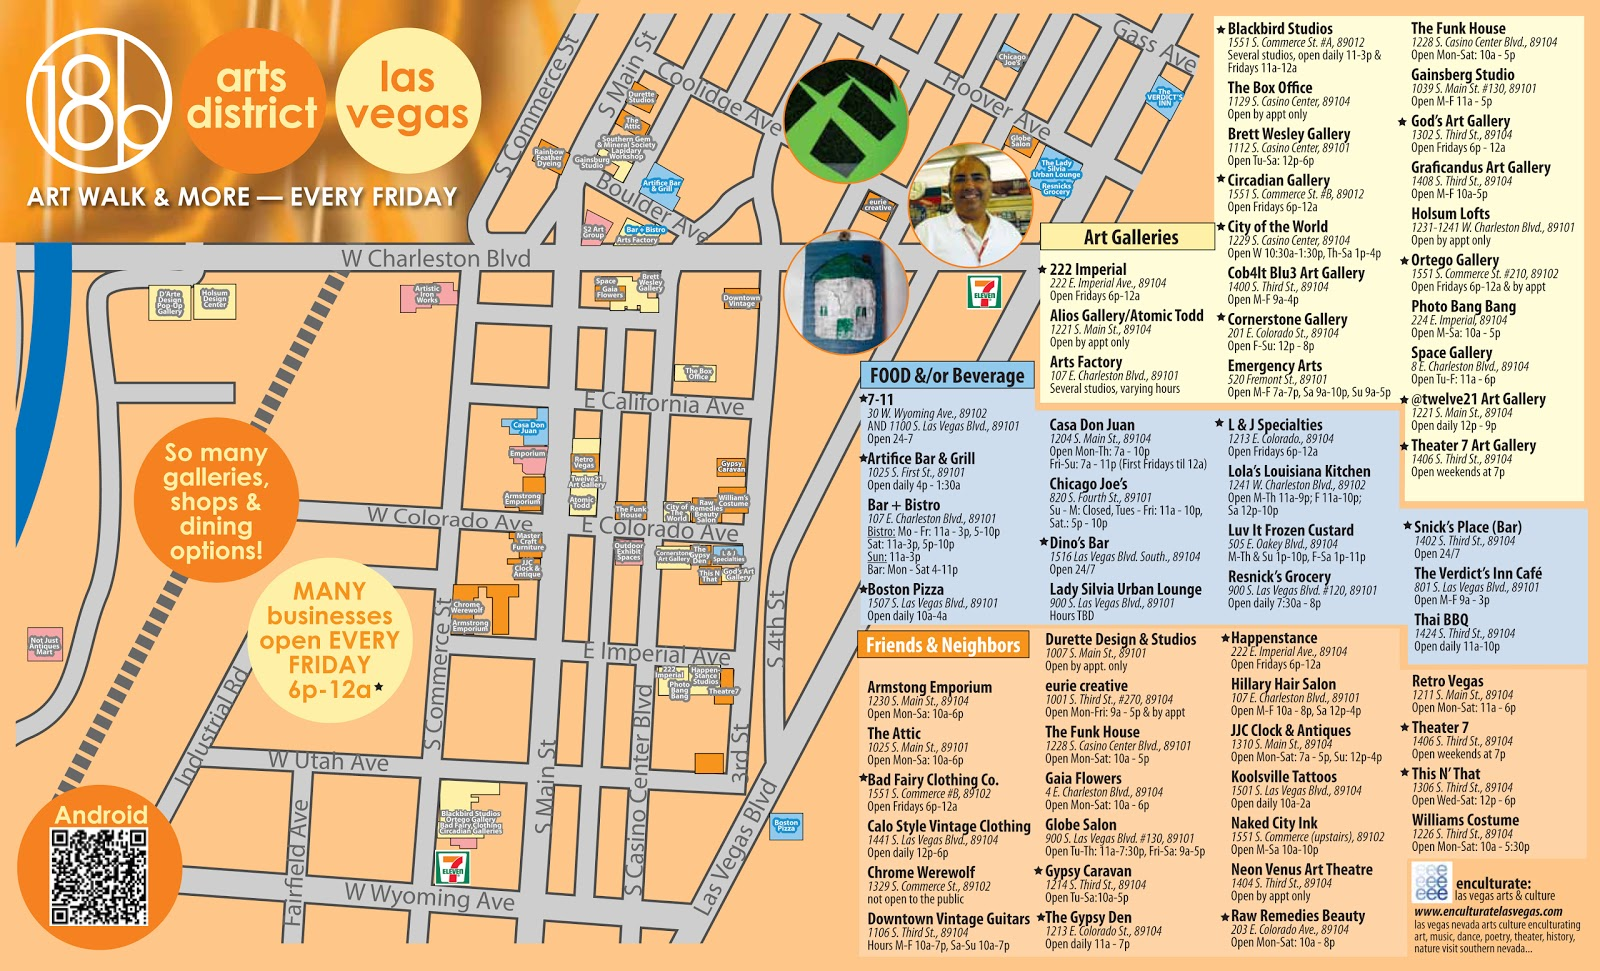 Worksheet. Las Vegas Arts and Culture New arts district map ready just in